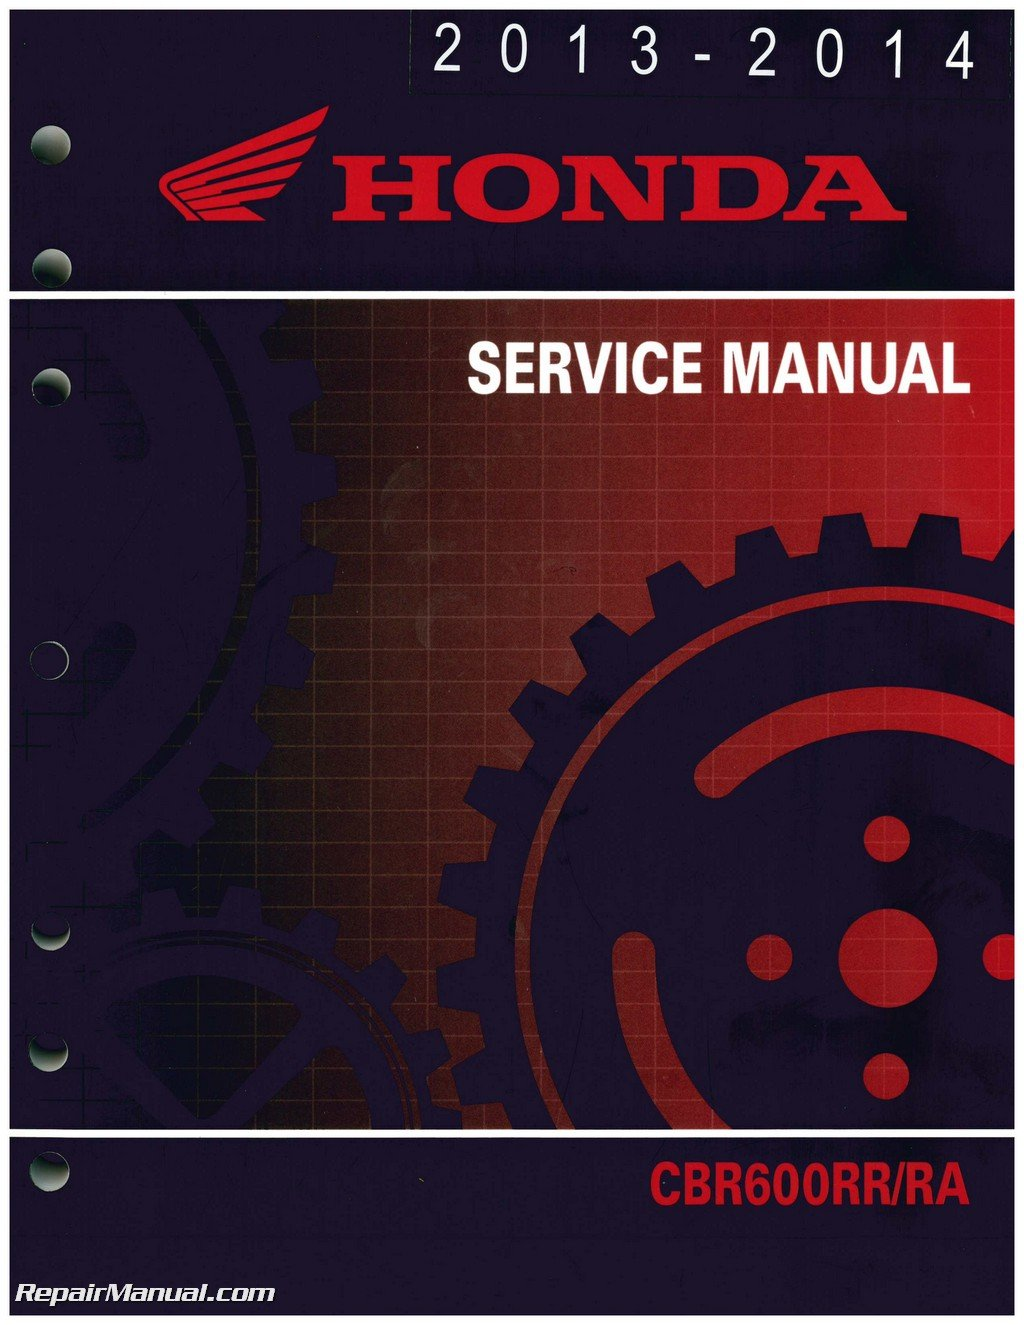 61MJC03 2013-2016 Honda CBR600RR RA Motorcycle Service Manual:  Manufacturer: Amazon.com: Books